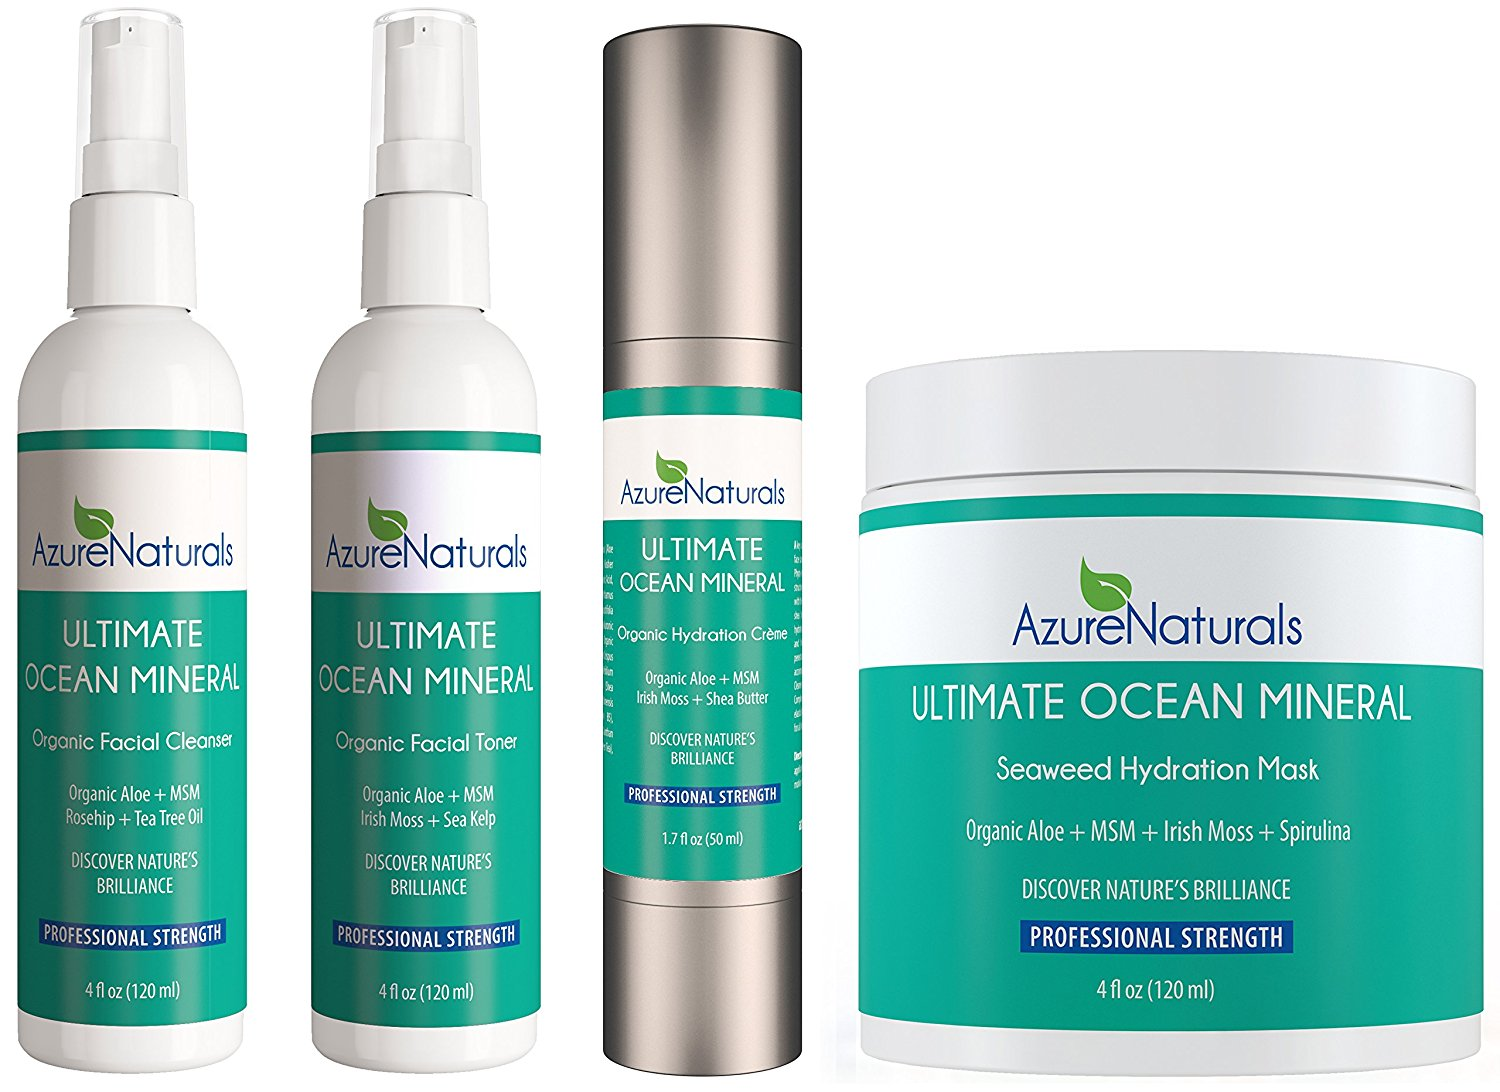 ULTIMATE OCEAN Mineral Gift Set Includes Ocean Mineral Hydration Cream + Organic Ocean Mineral Toner + Natural Cleanser + Seaweed Hydration Facial Mask